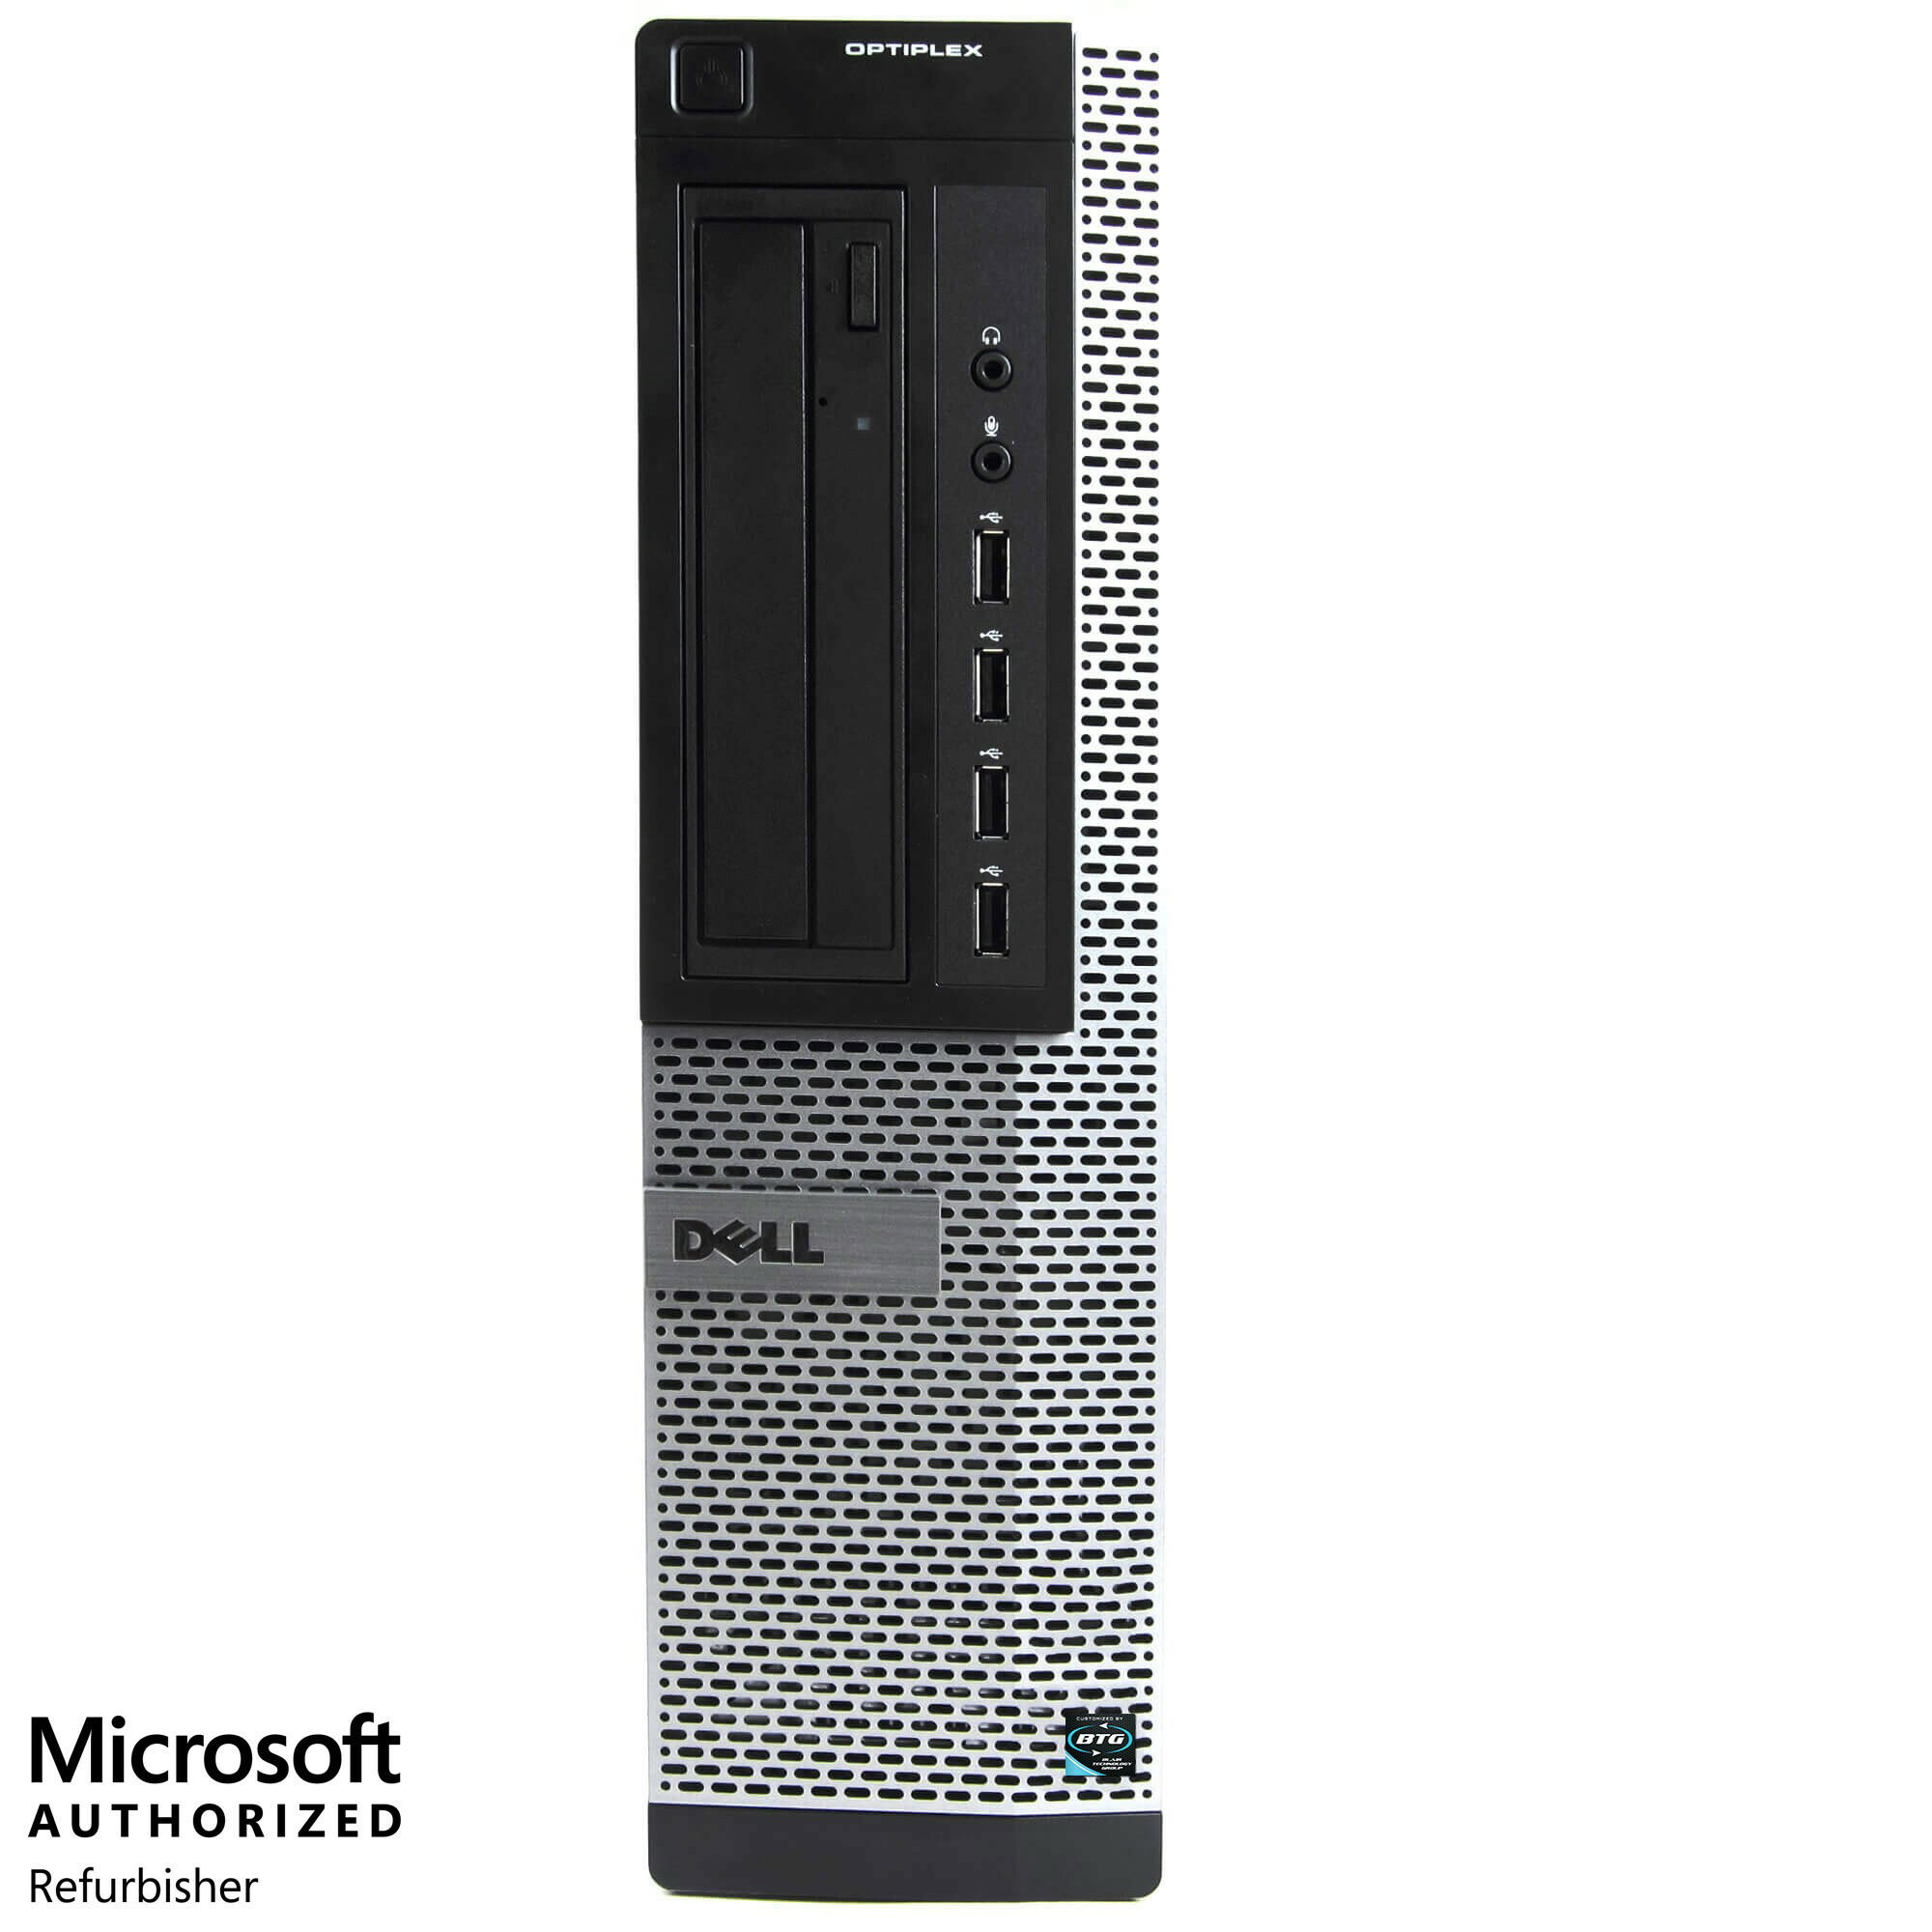 Custom Dell Optiplex 760 Desktop Computer Intel Core 2 Duo Up to 16GB RAM  and 512GB SSD Windows 10 Home Includes Monitor, Keyboard, Mouse and Wifi